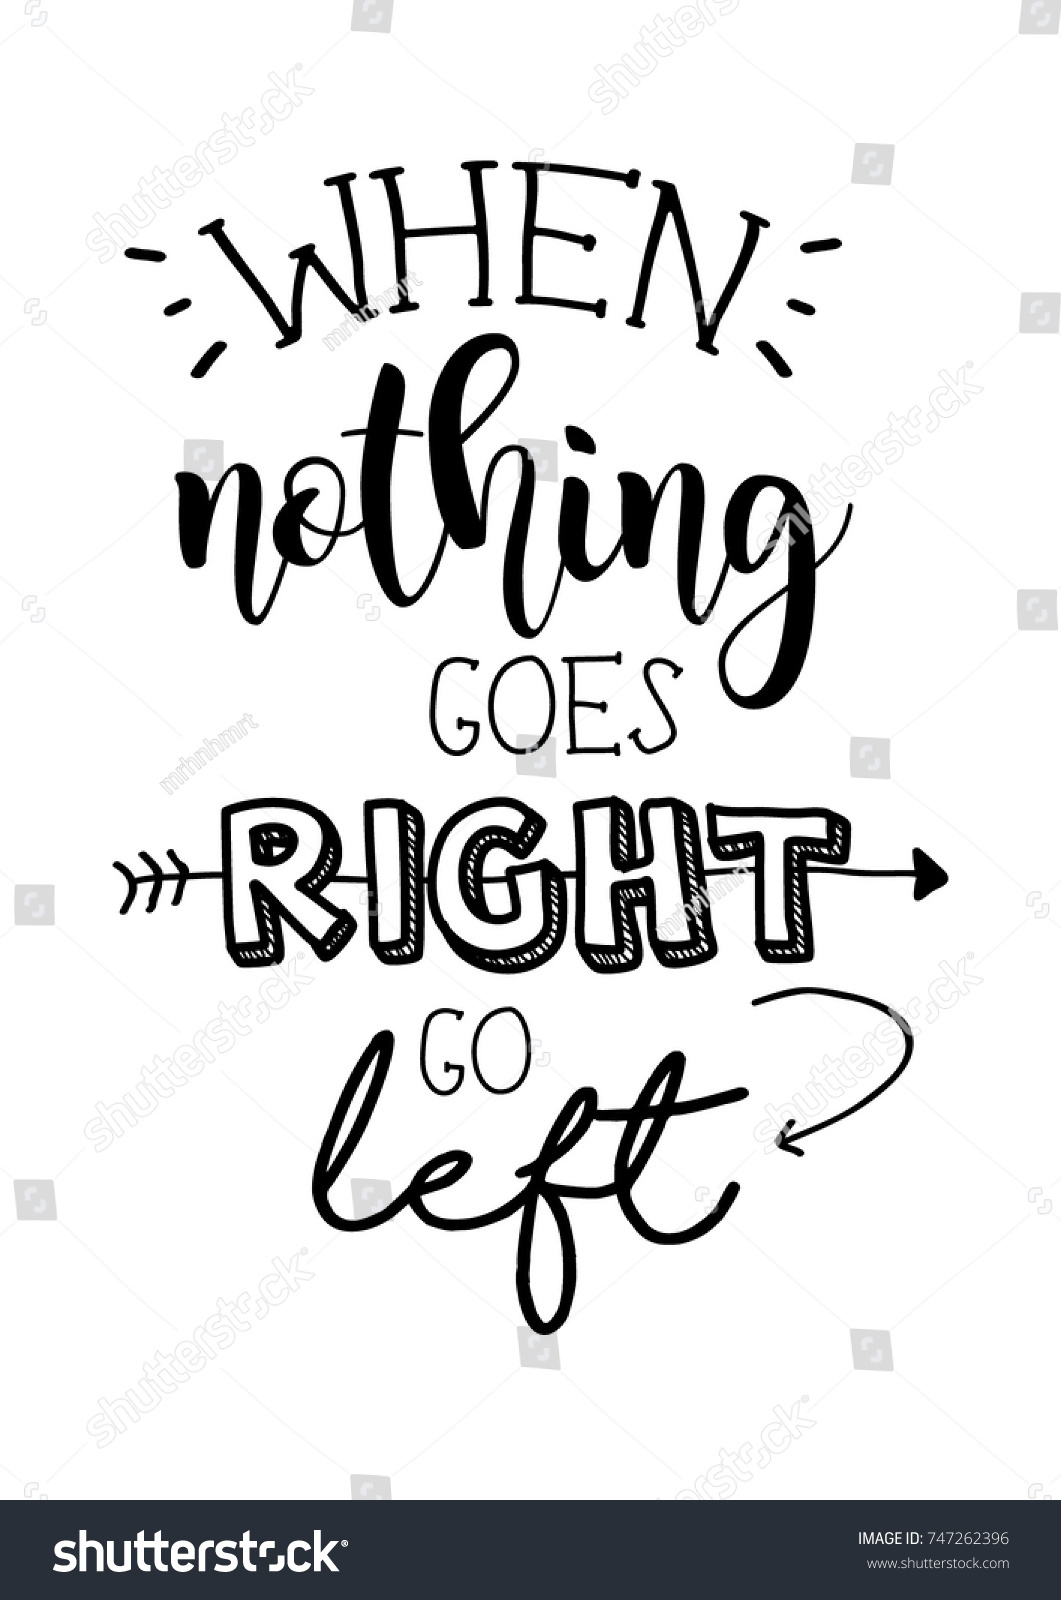 When Nothing Goes Right Go Left Stock Vector Royalty Free